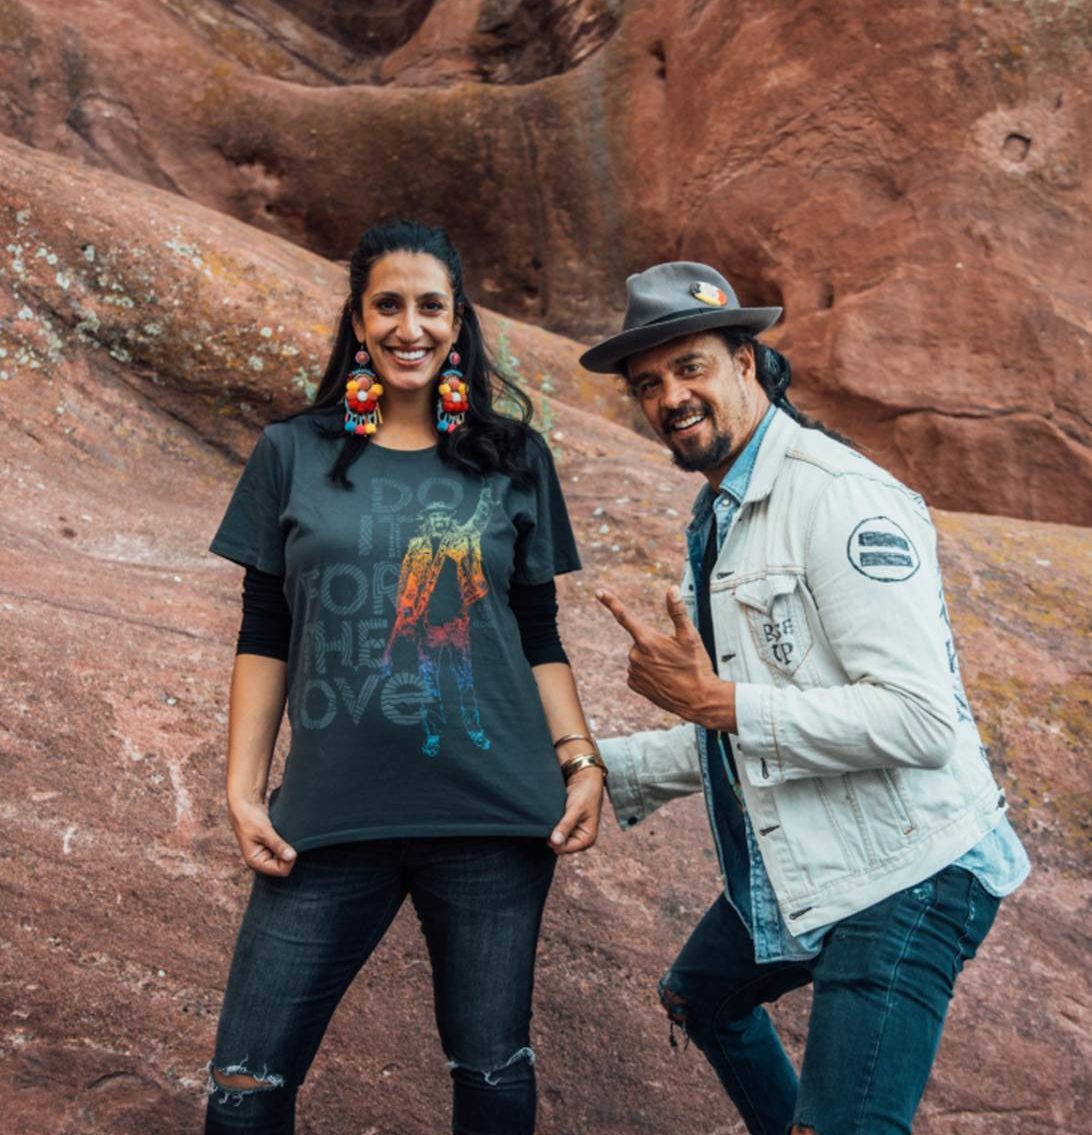 Michael Franti posing with his wife